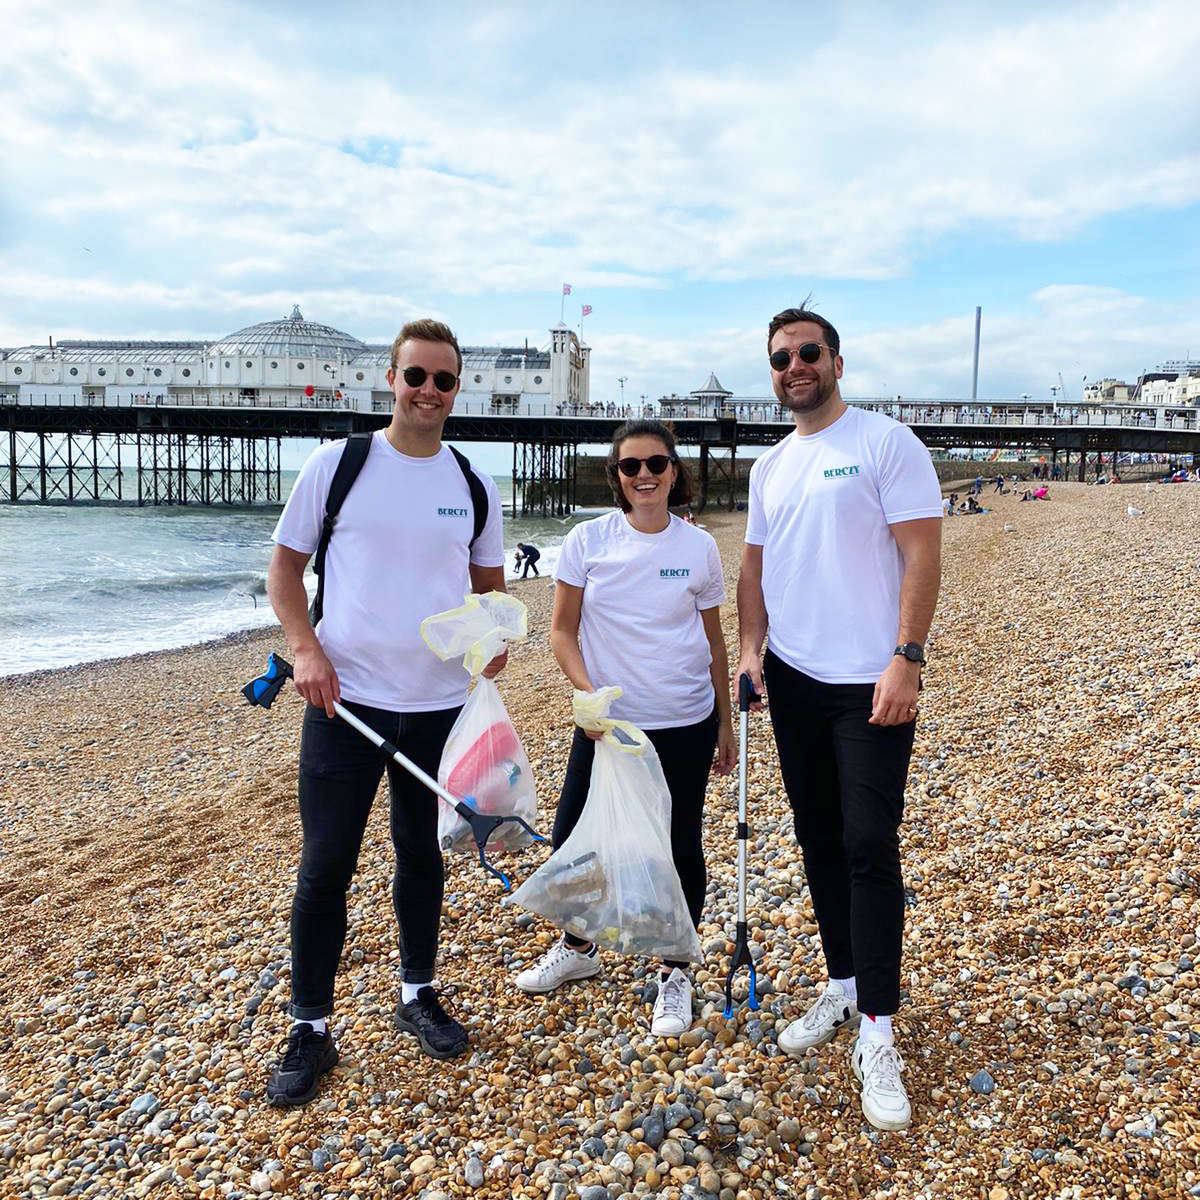 The founding team at Berczy doing a litter pick on a beach